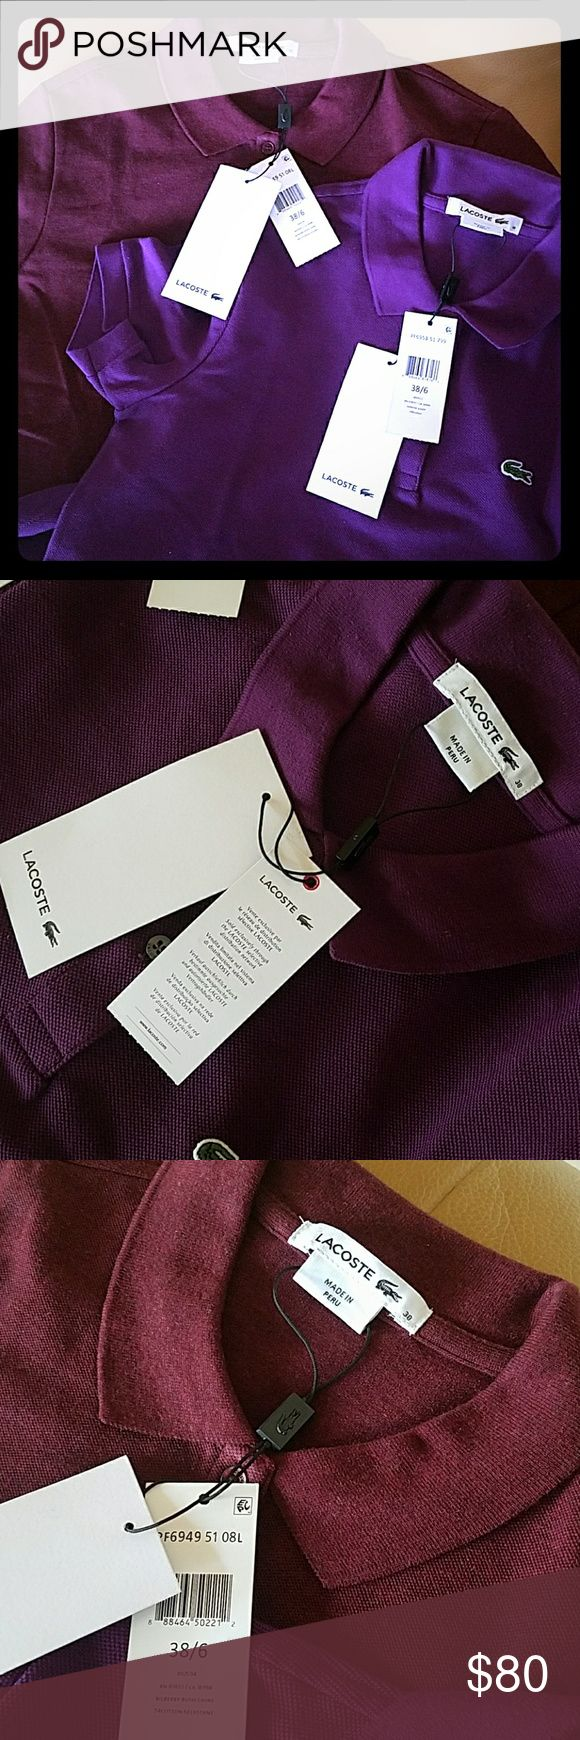 NWT Lacoste polo shirts Womens lacoste shirts. Never worn in size 38/6. 80$ for both or 45 ea in Bohemme purple and Bilberry Busch Chine. Lacoste Tops